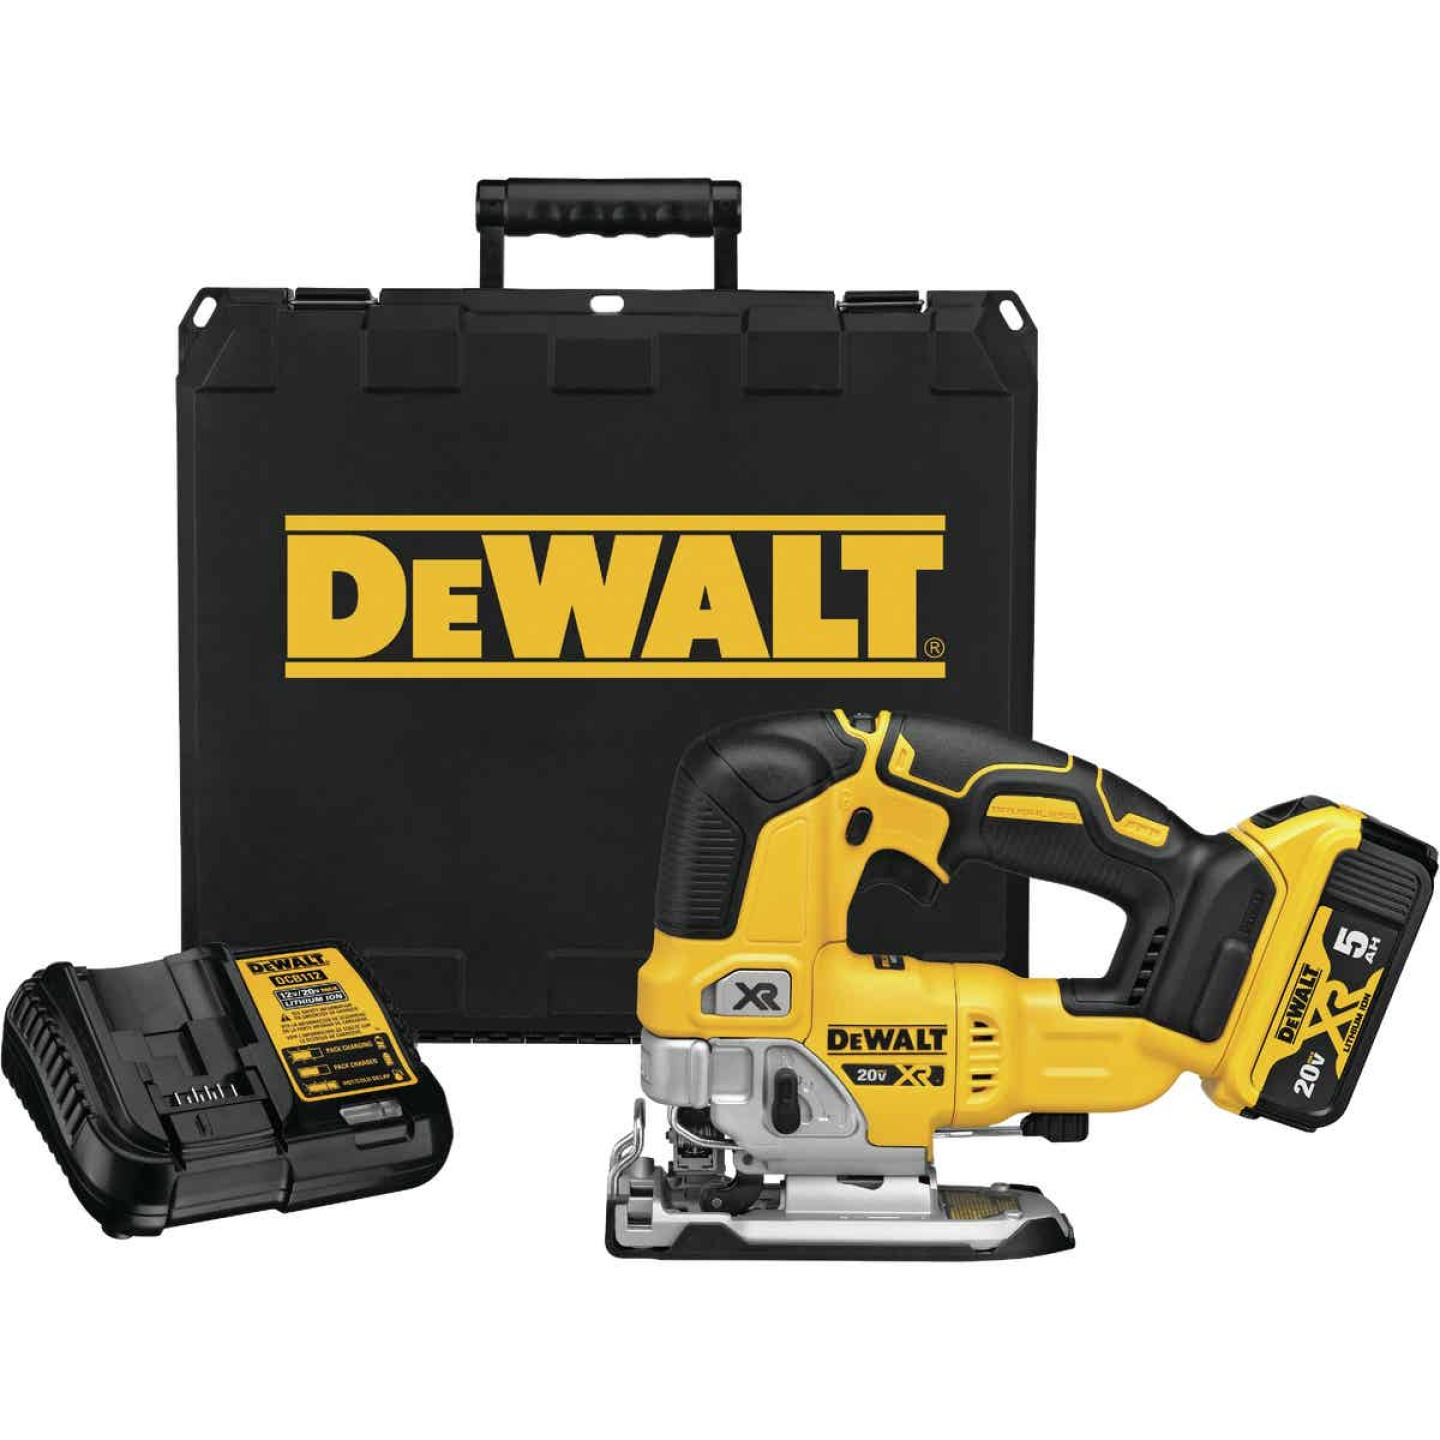 DeWalt 20 Volt MAX XR Lithium-Ion 5.0 Ah Brushless Cordless Jig Saw Kit Image 1